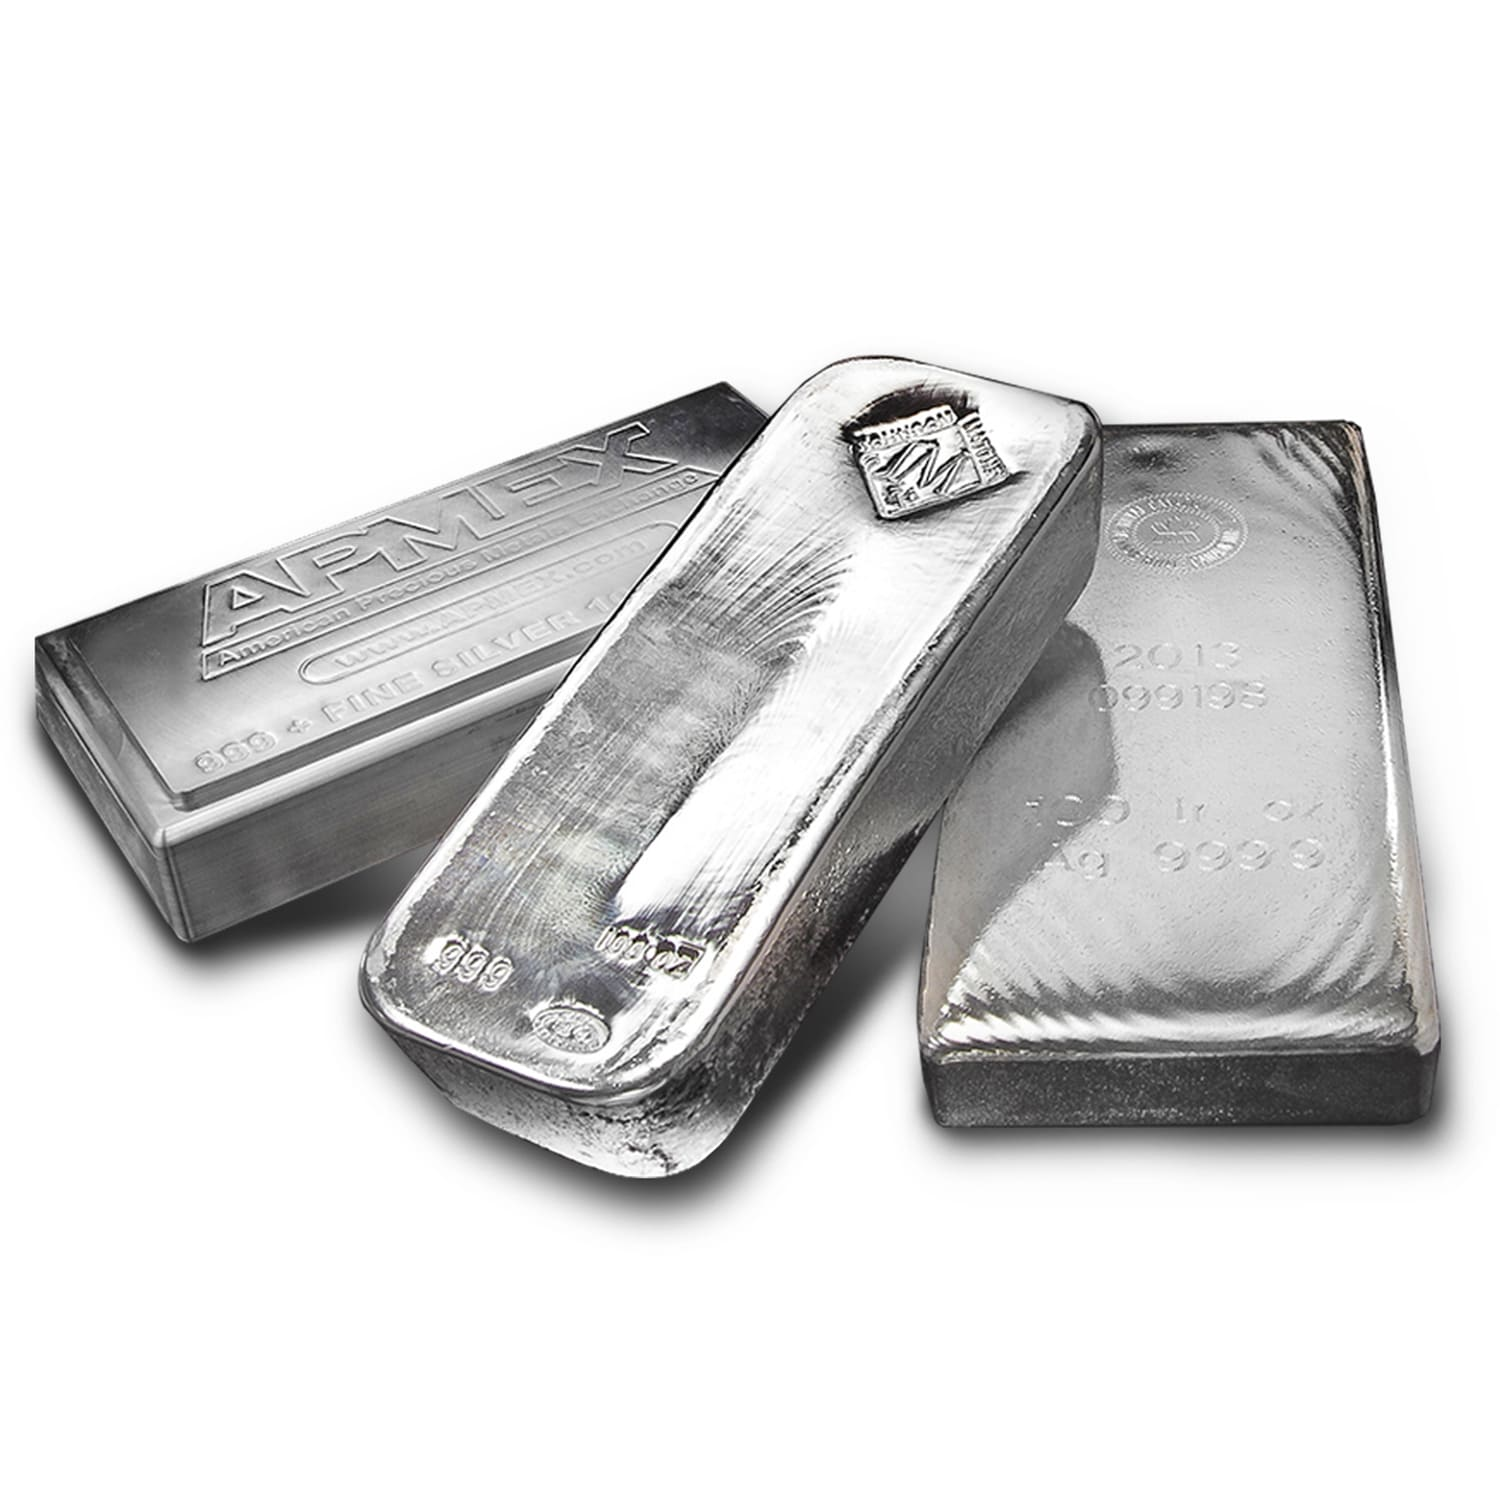 102.40 oz Silver Bar - Secondary Market